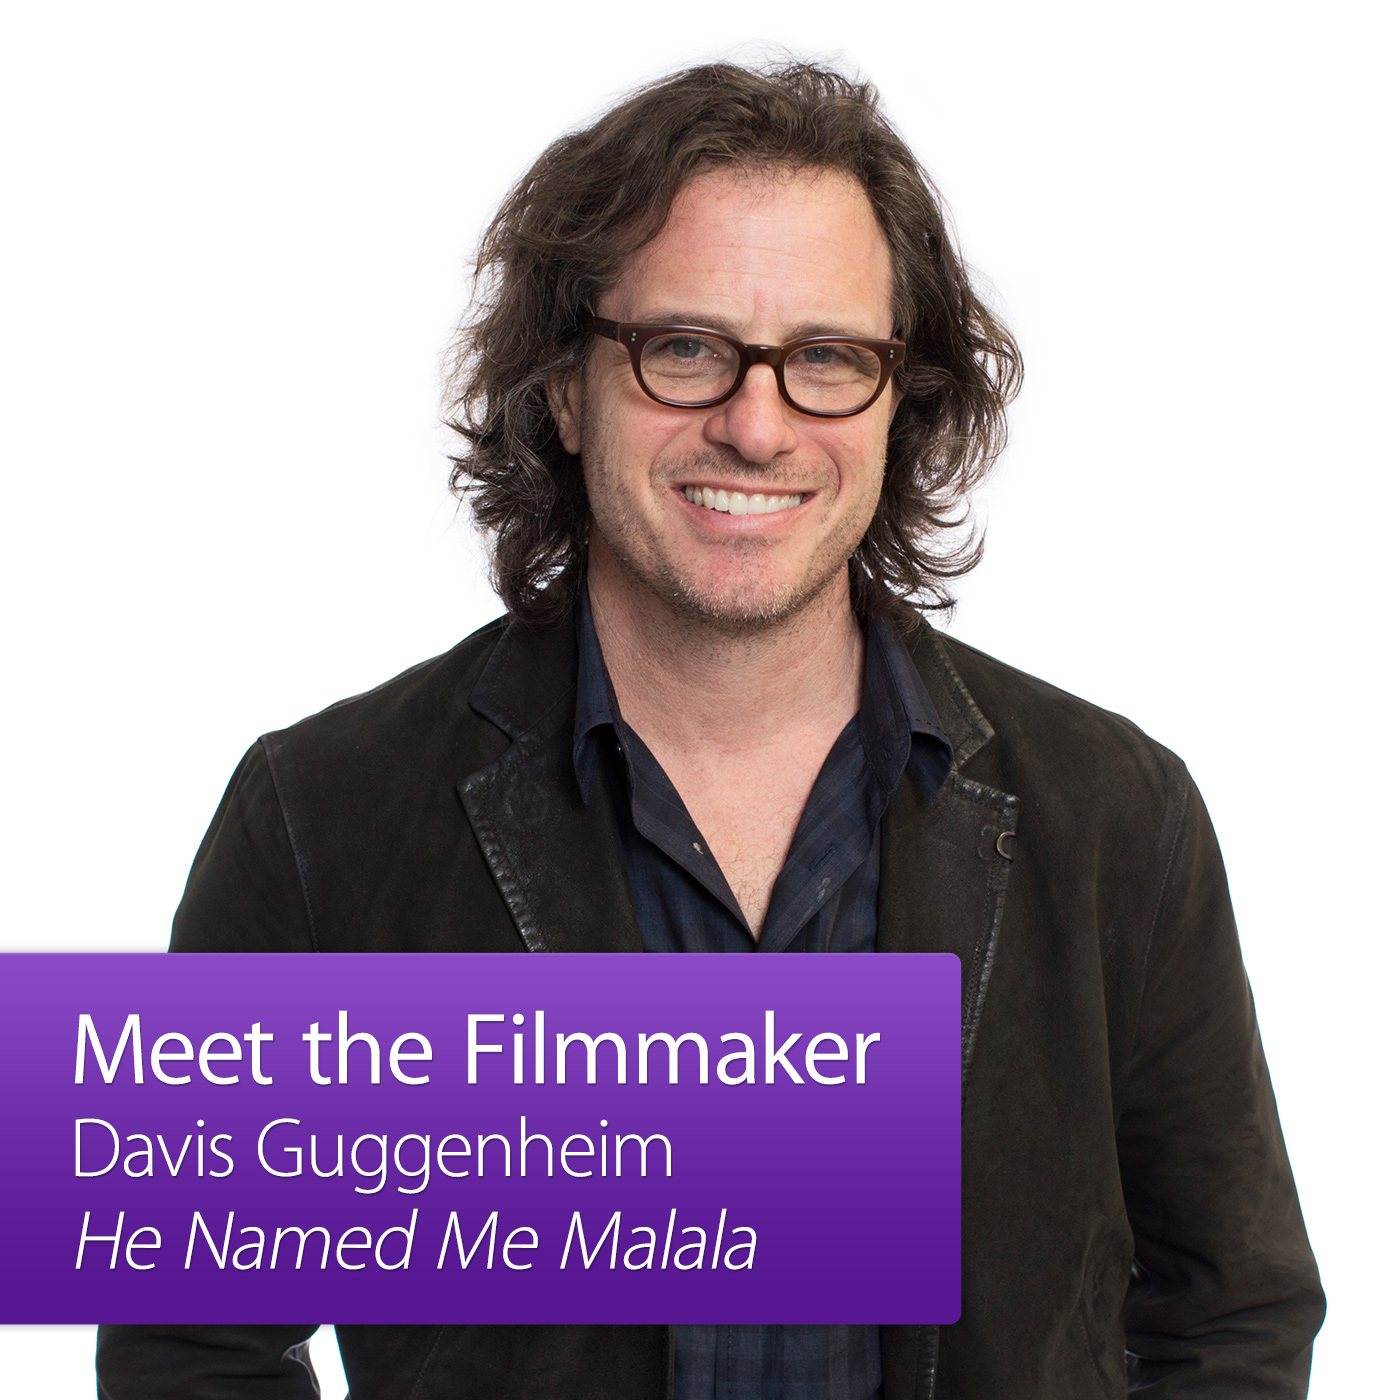 He Named Me Malala: Meet the Filmmaker